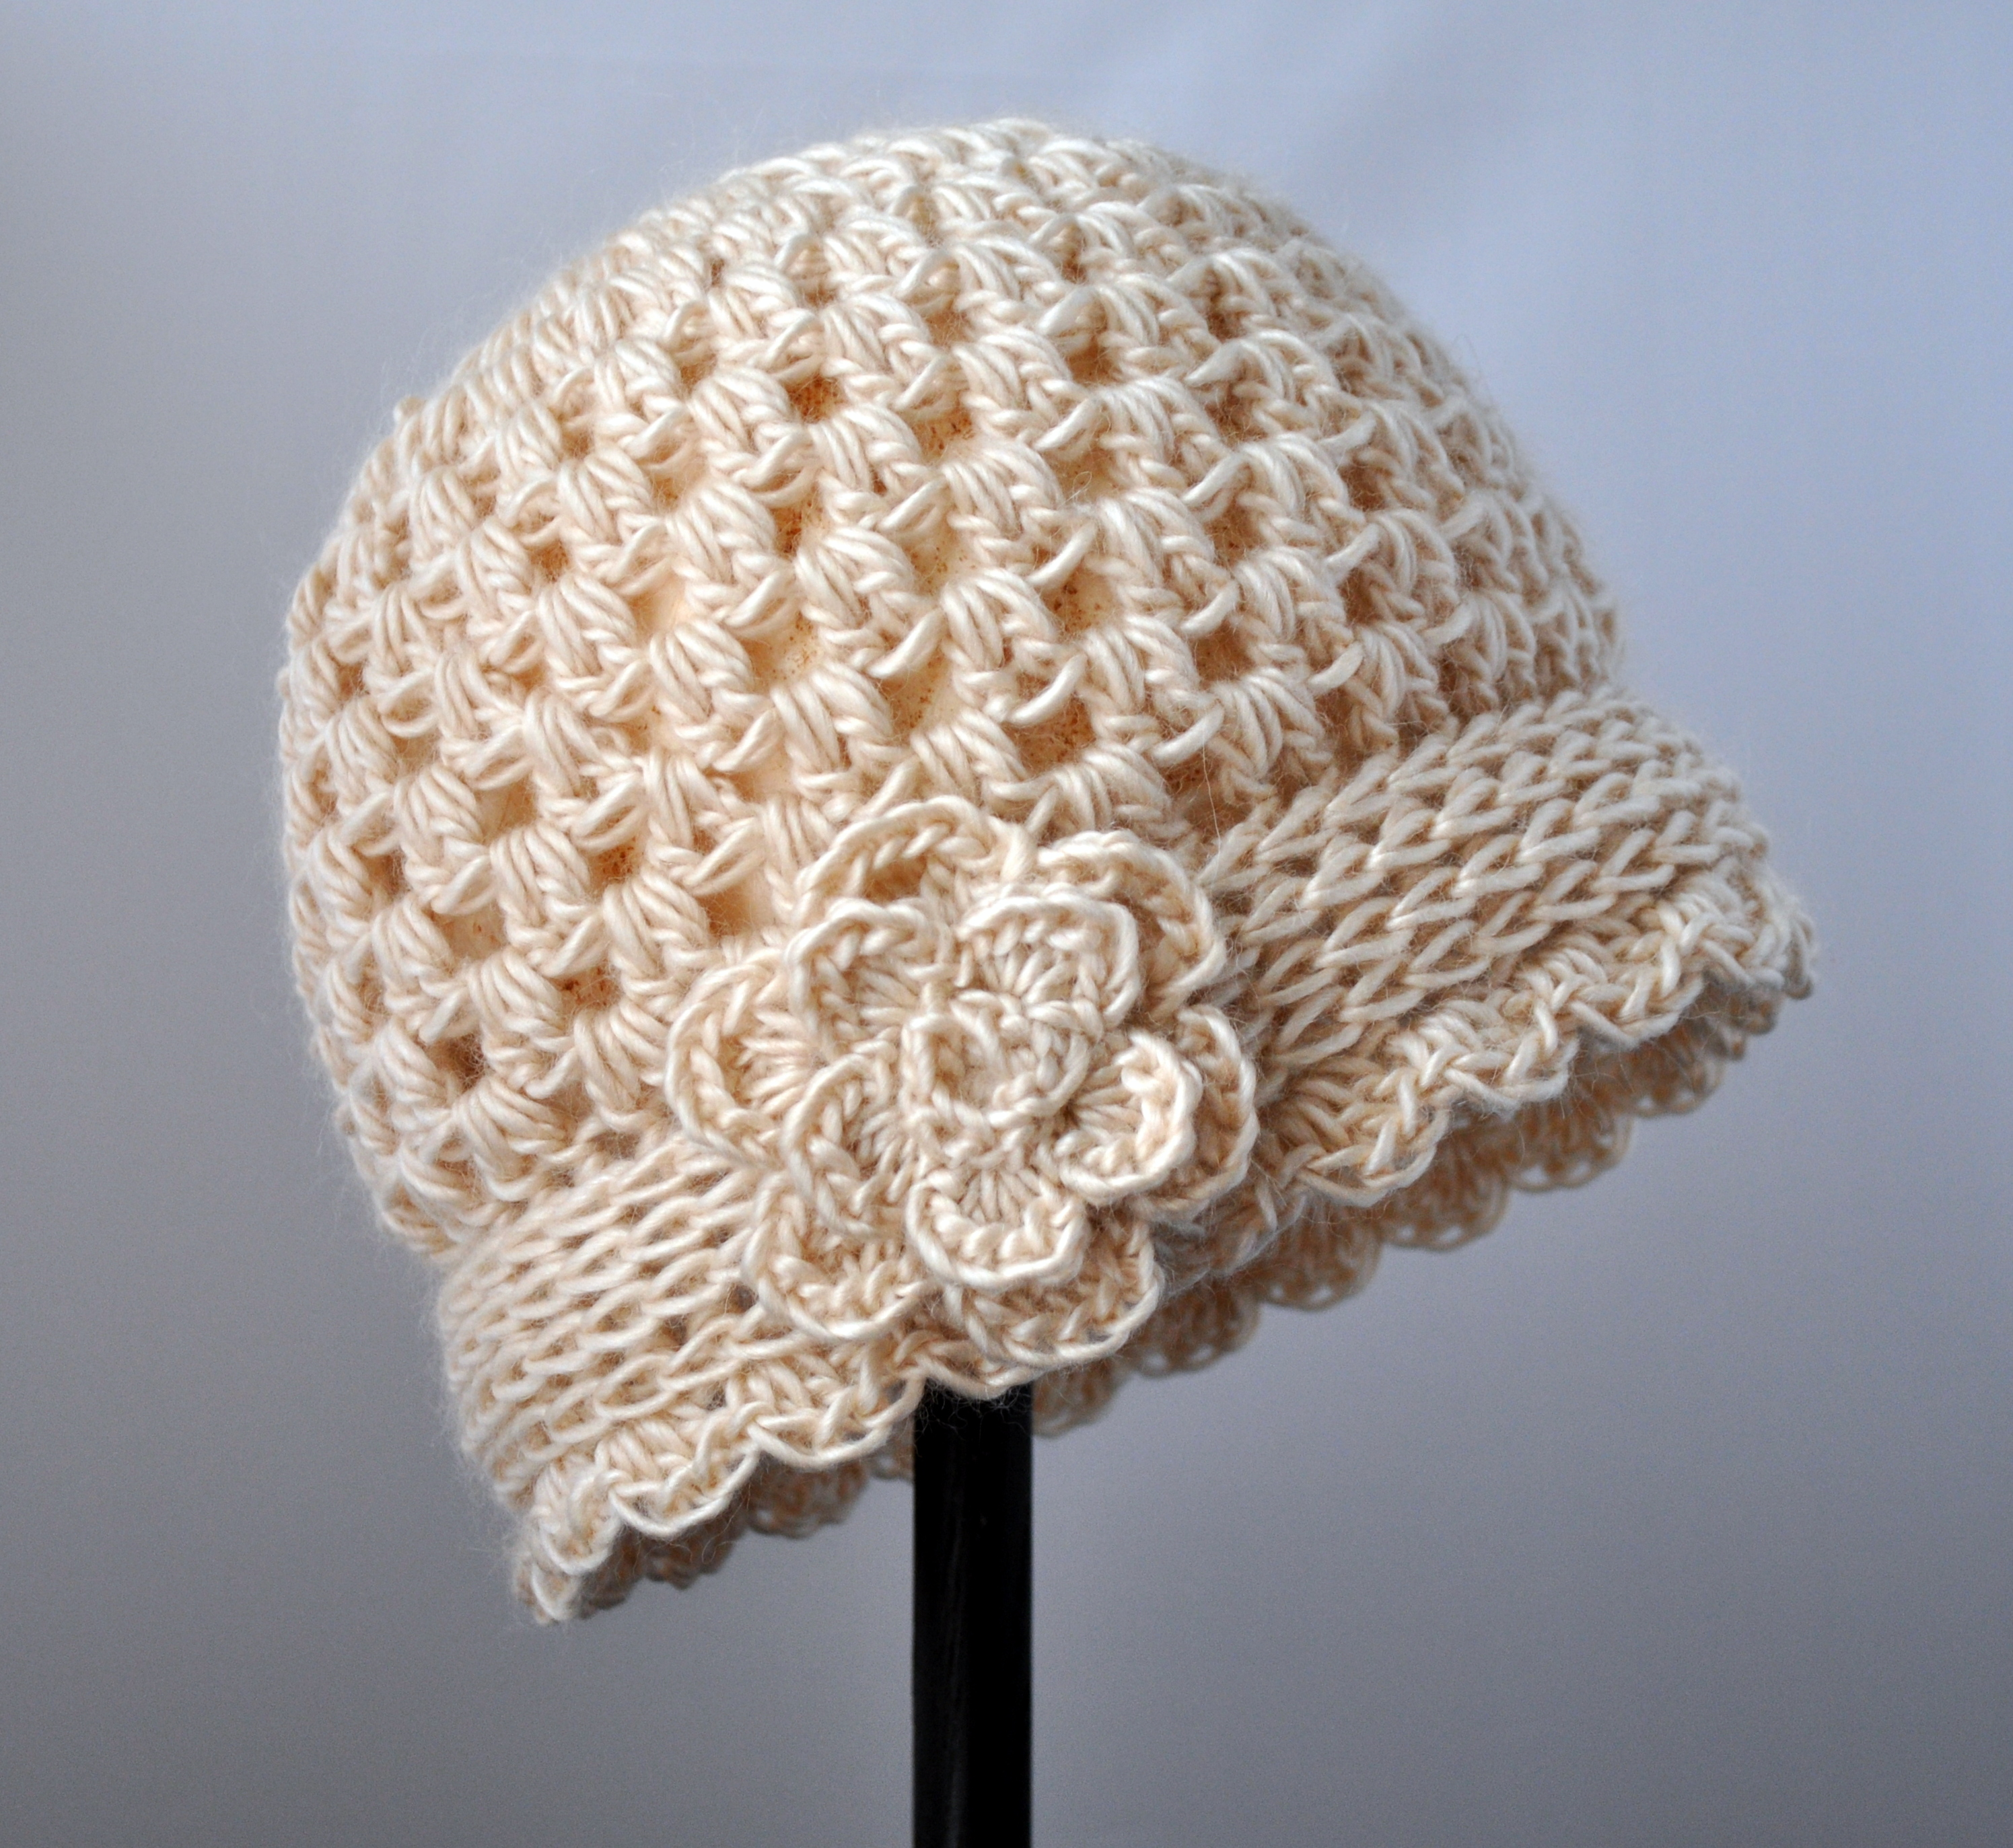 Antique Crochet Patterns : Crochet Vintage Flowered Cloche Pattern Classy Crochet